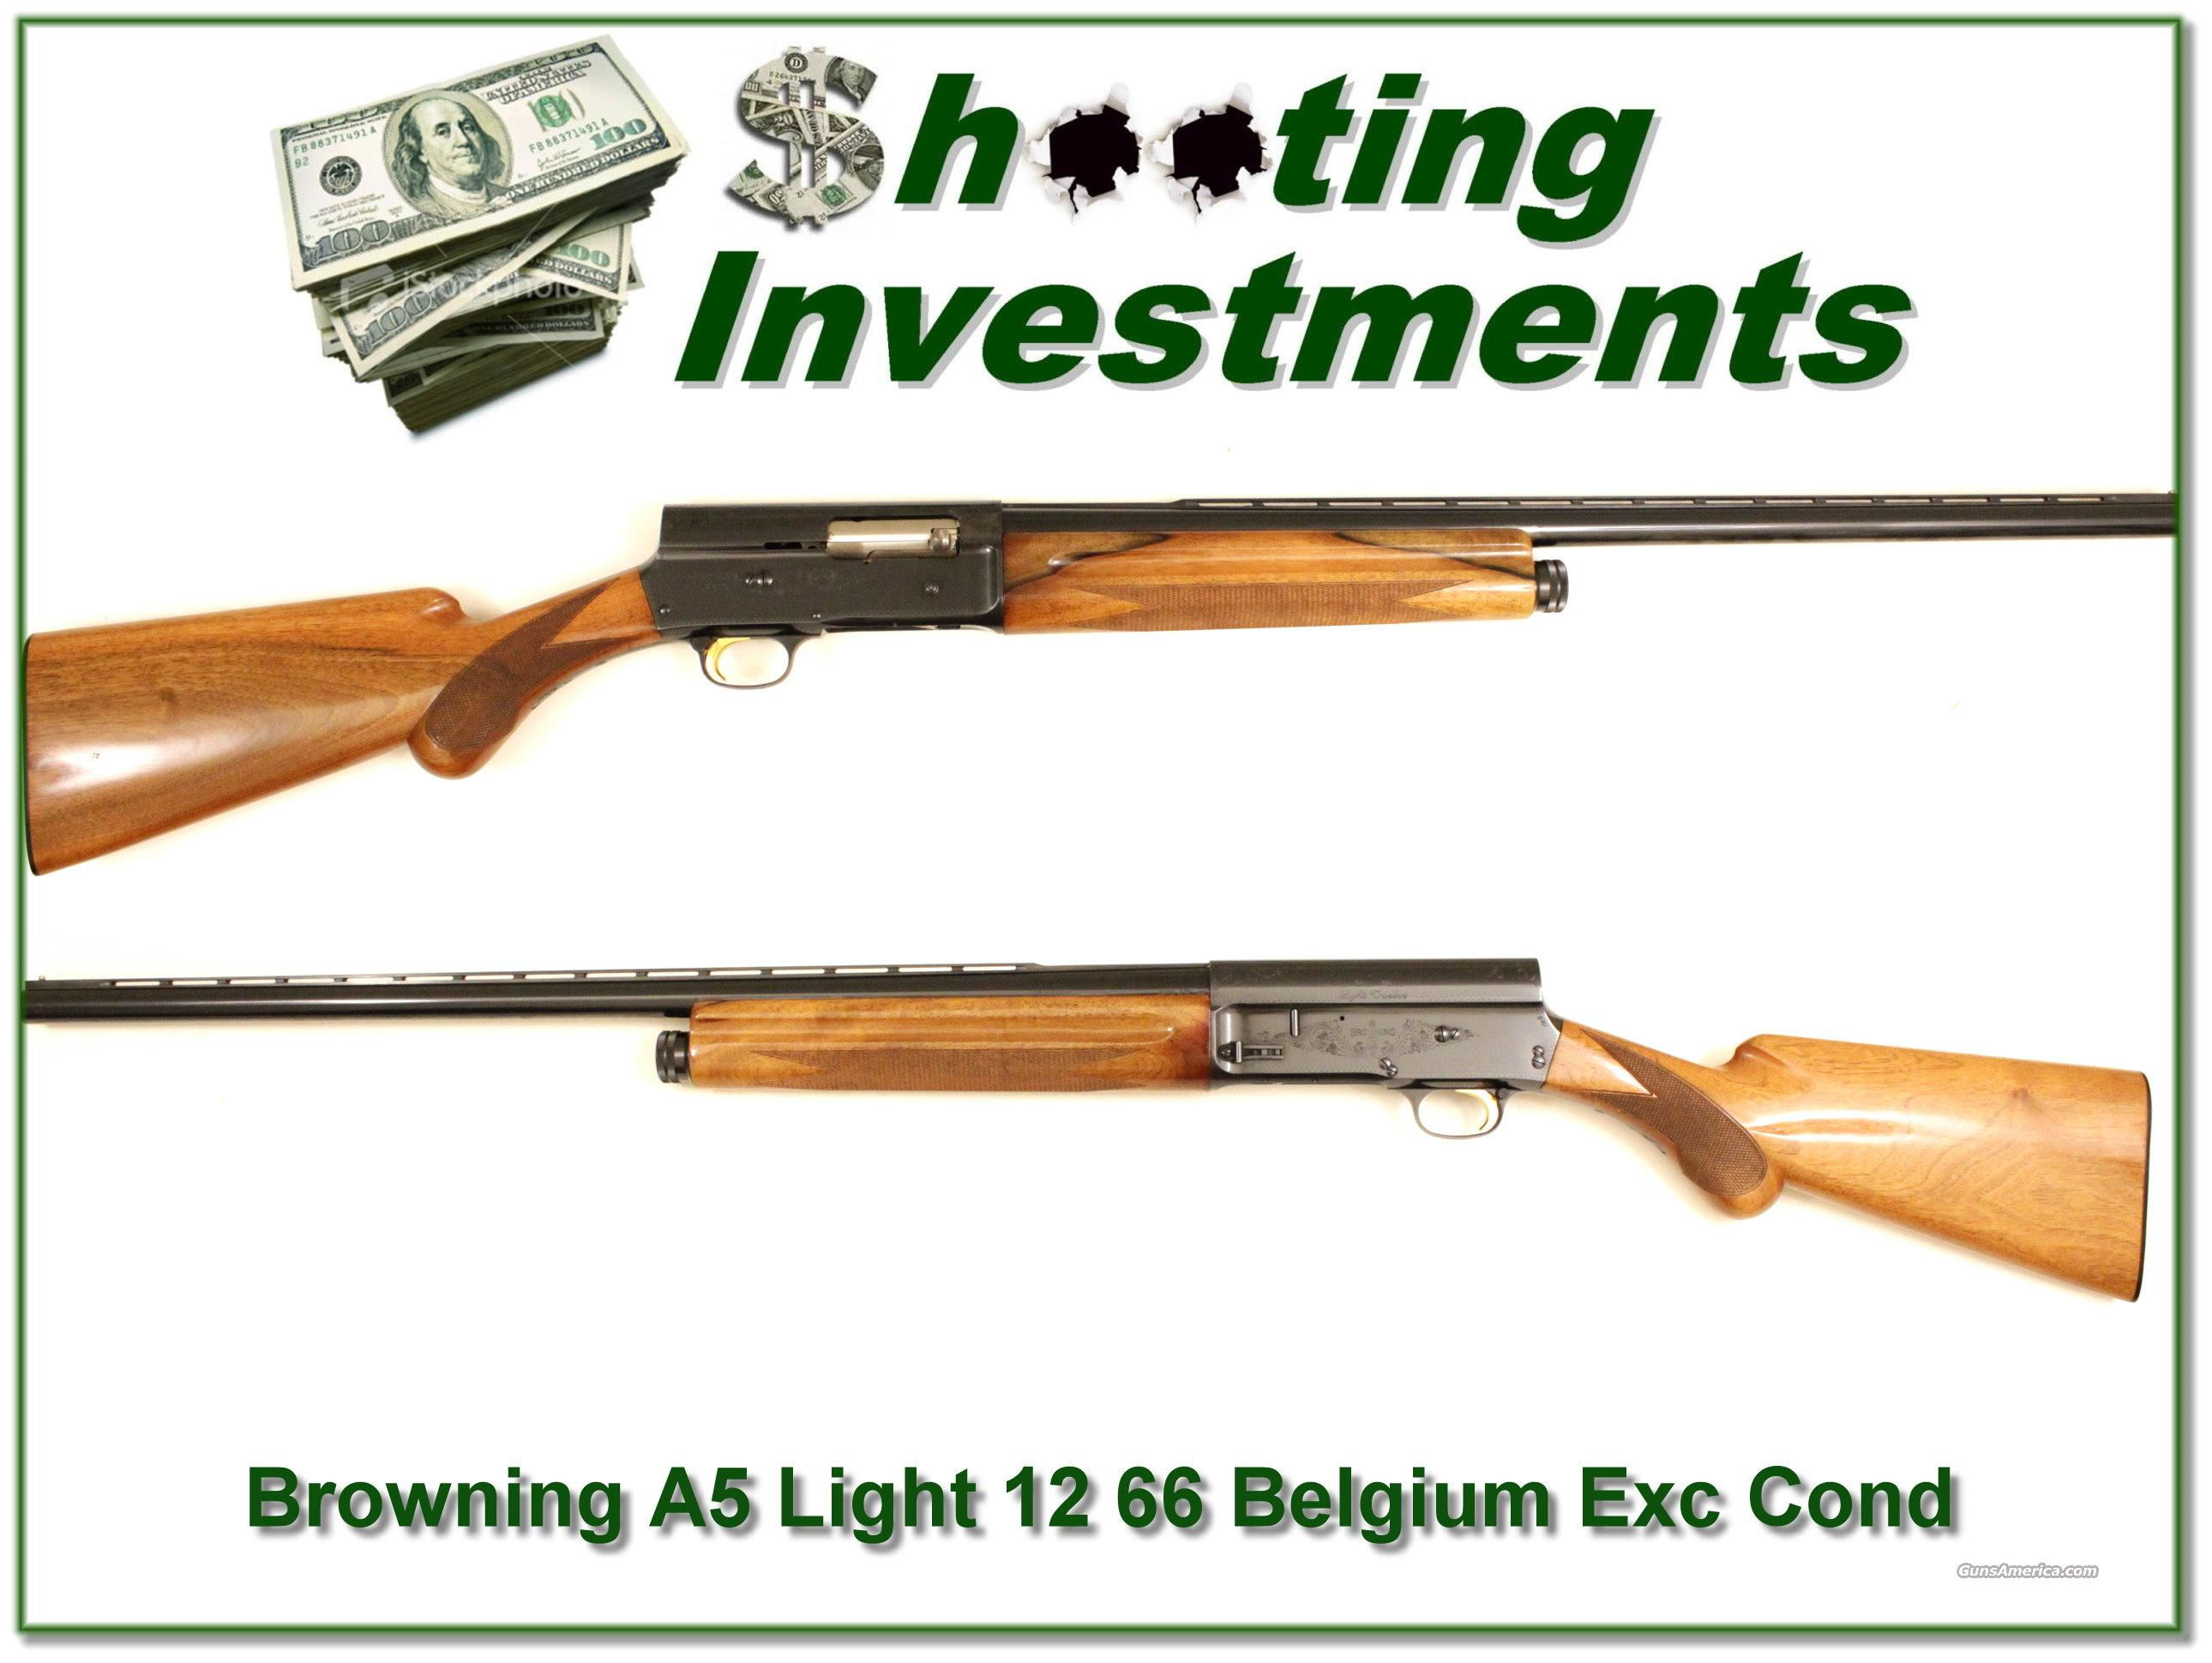 Browning A5 Light 12 66 Belgium blond near new  Guns > Shotguns > Browning Shotguns > Autoloaders > Hunting